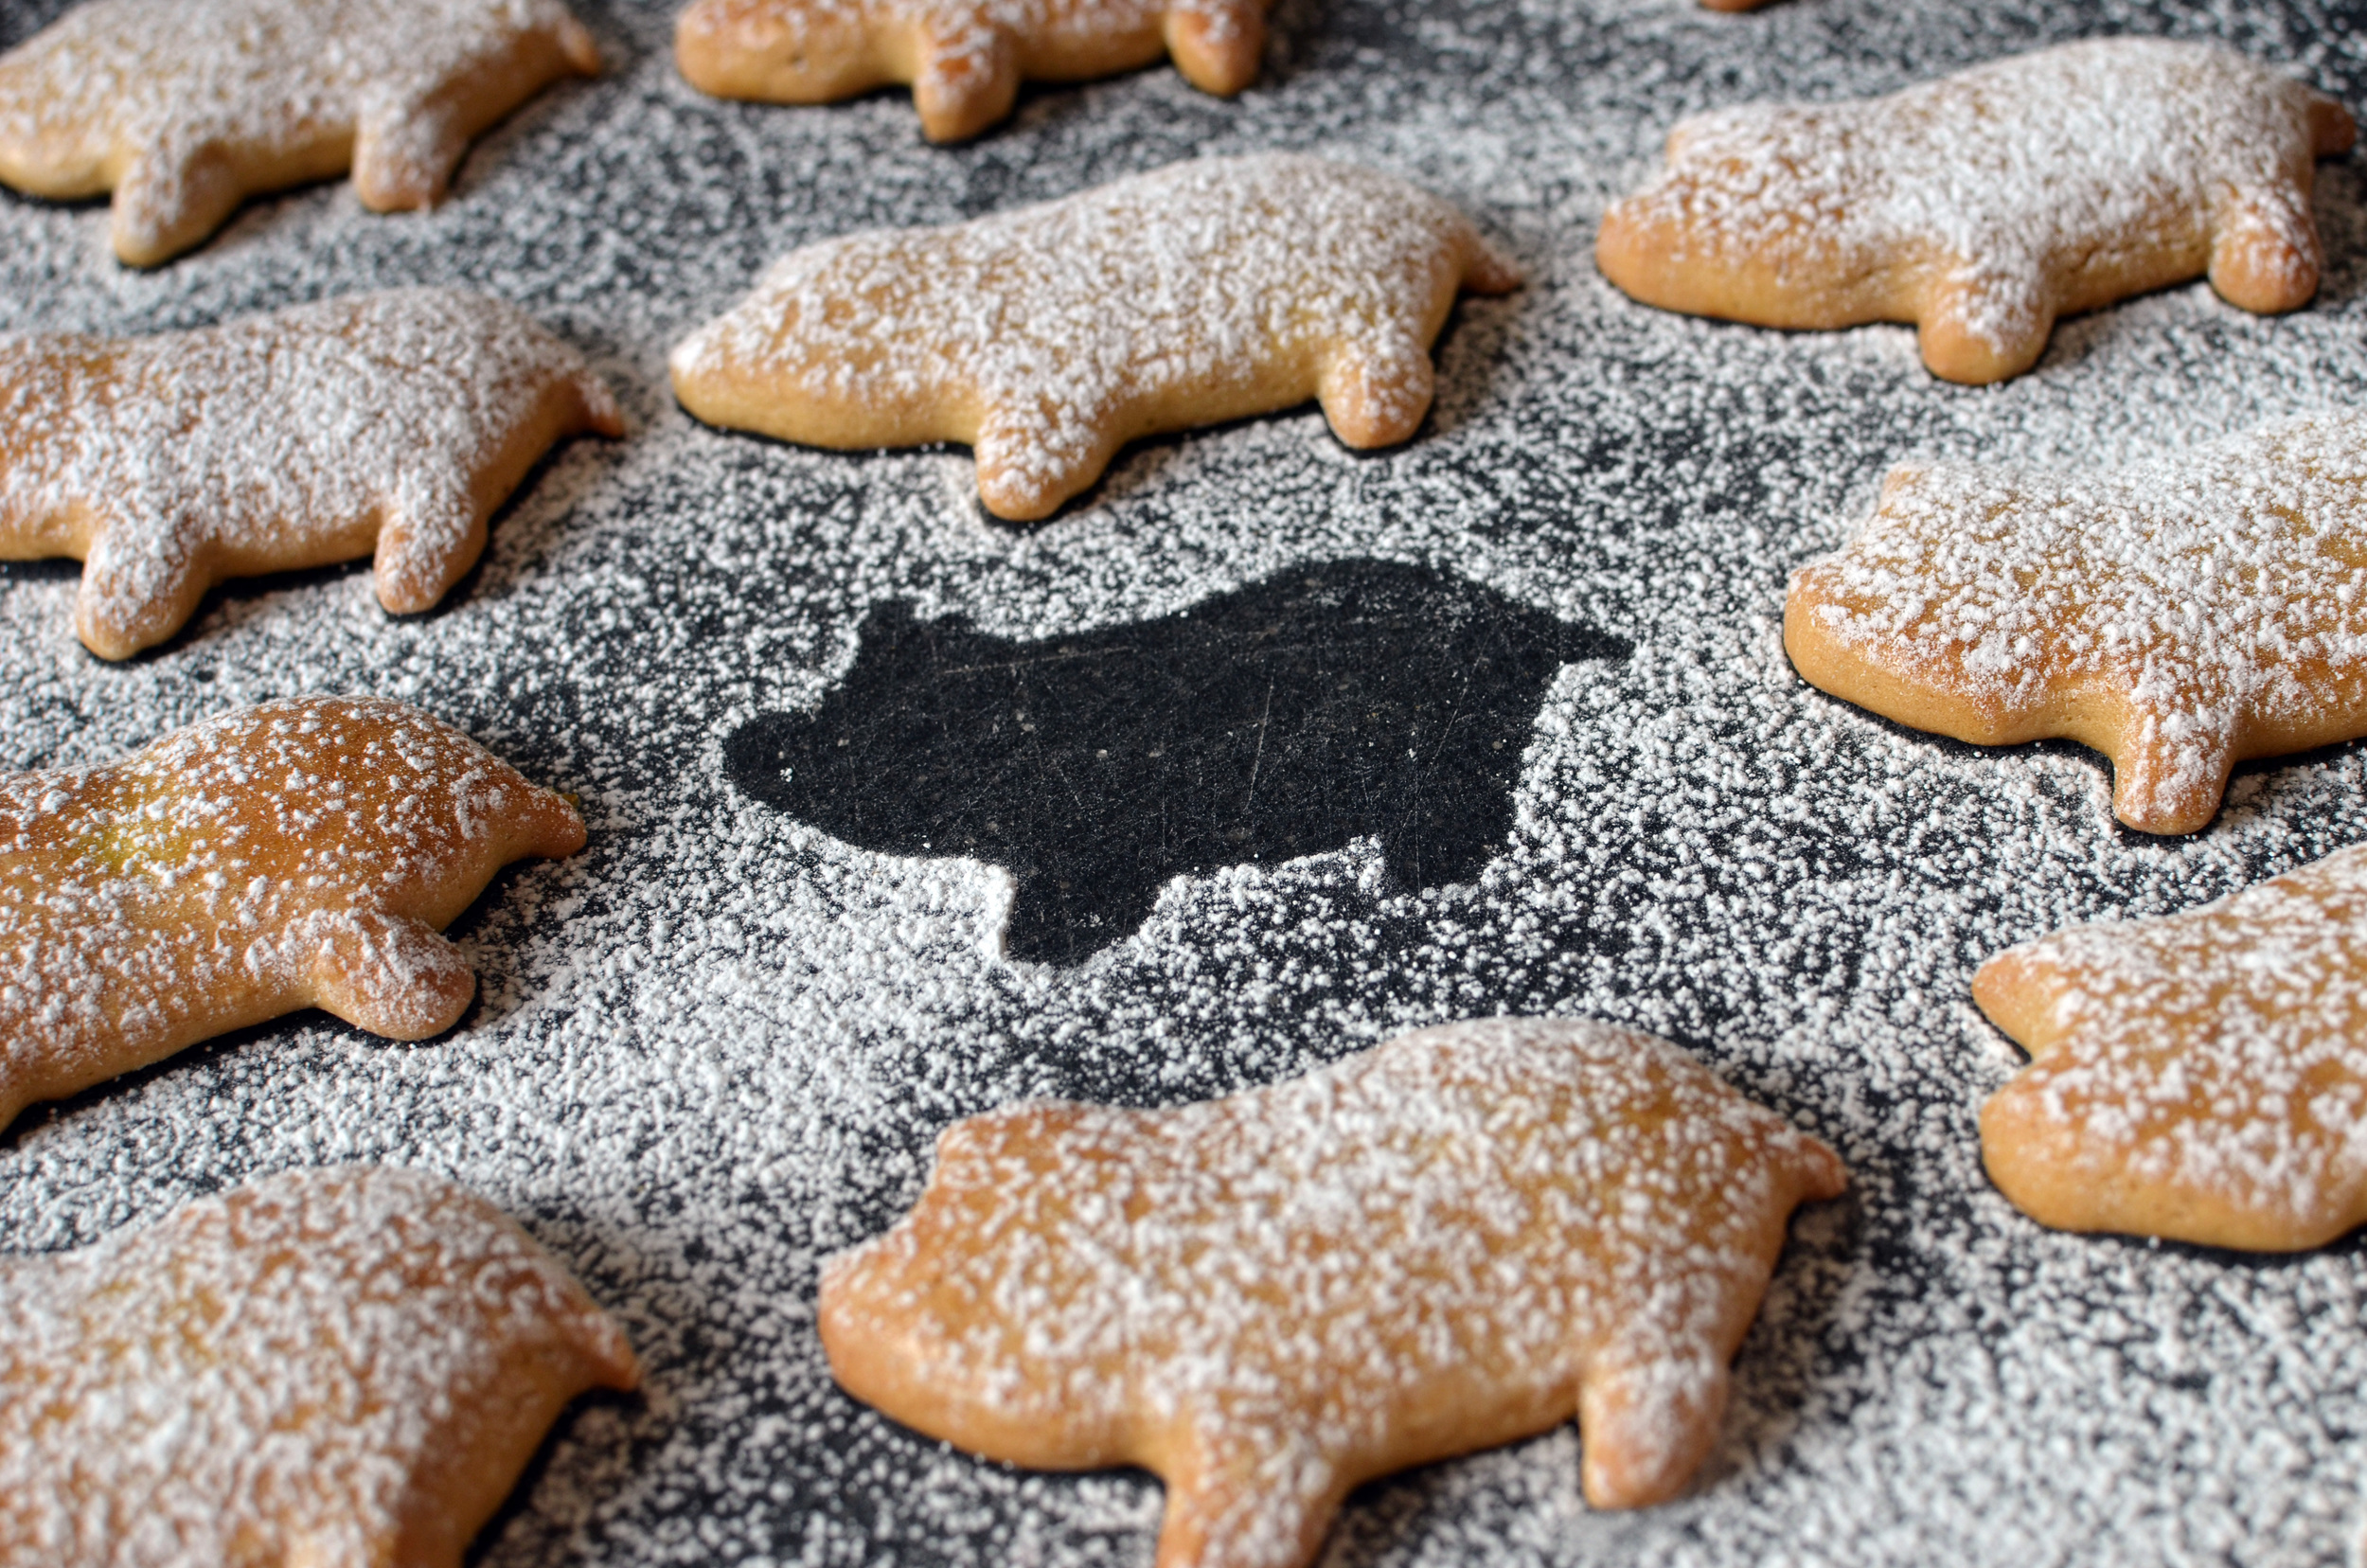 Pati Jinich's Piggy Cookies - ButterYum. how to make Mexican pig cookies, creditos, cochinitos, marranitoso, or puerquitos.